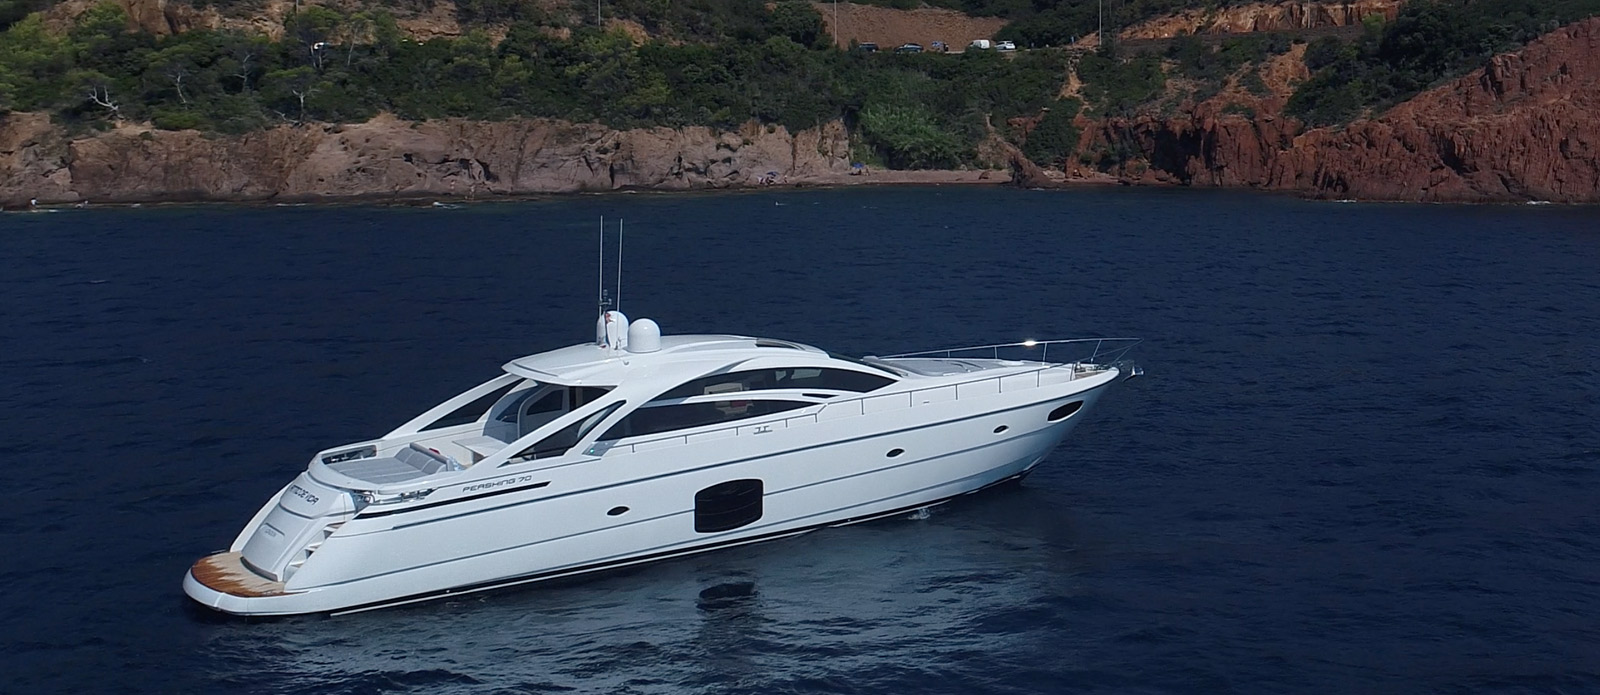 Pershing 70 - Ritmo De Vida - Side-View